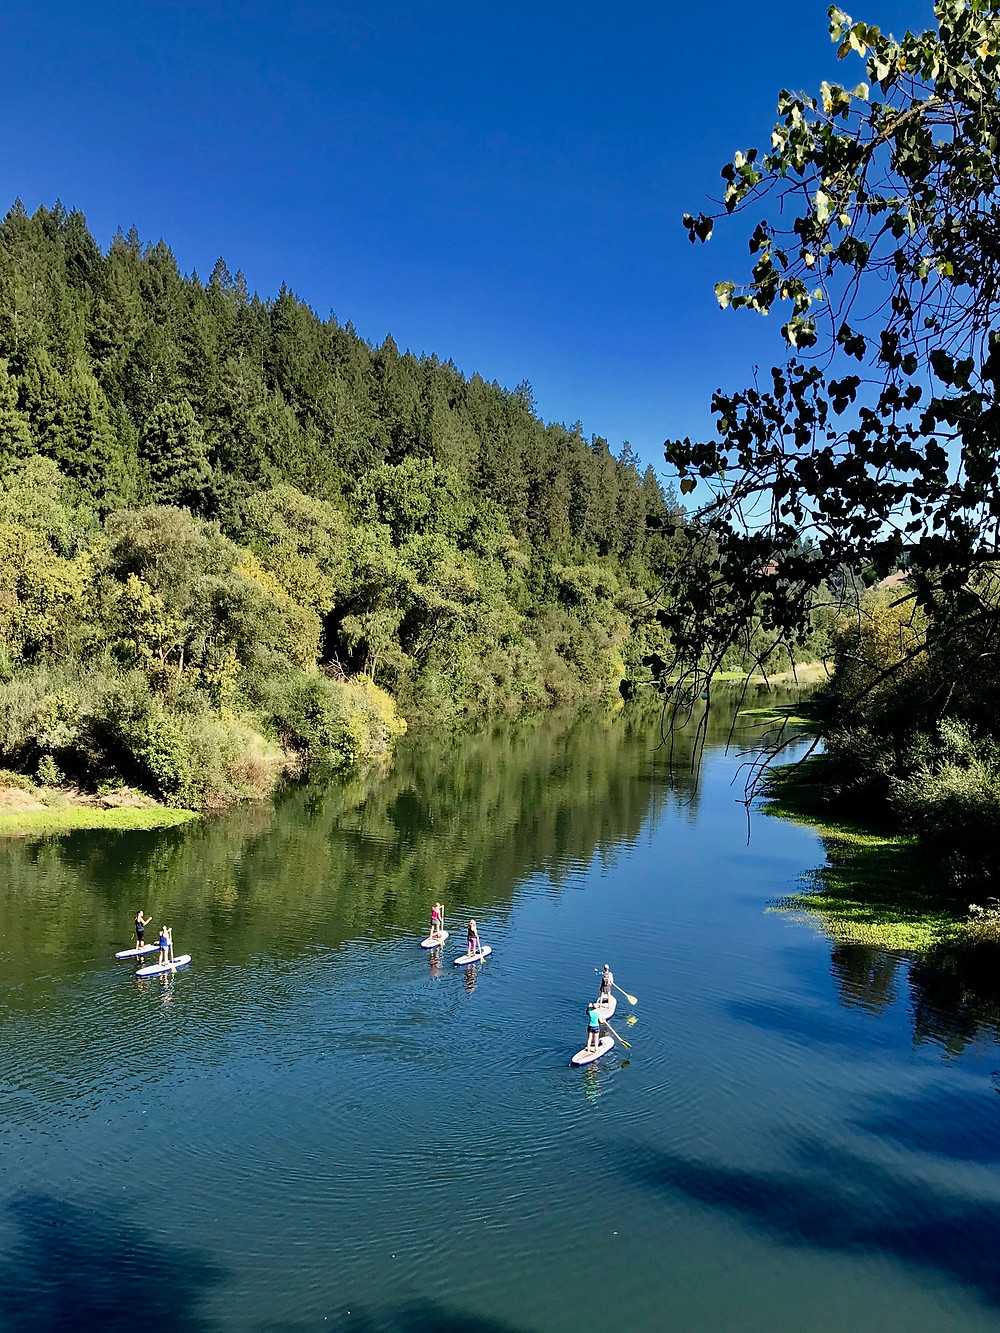 a group of people stand up paddle boarding the Russian River in California's Wine Country